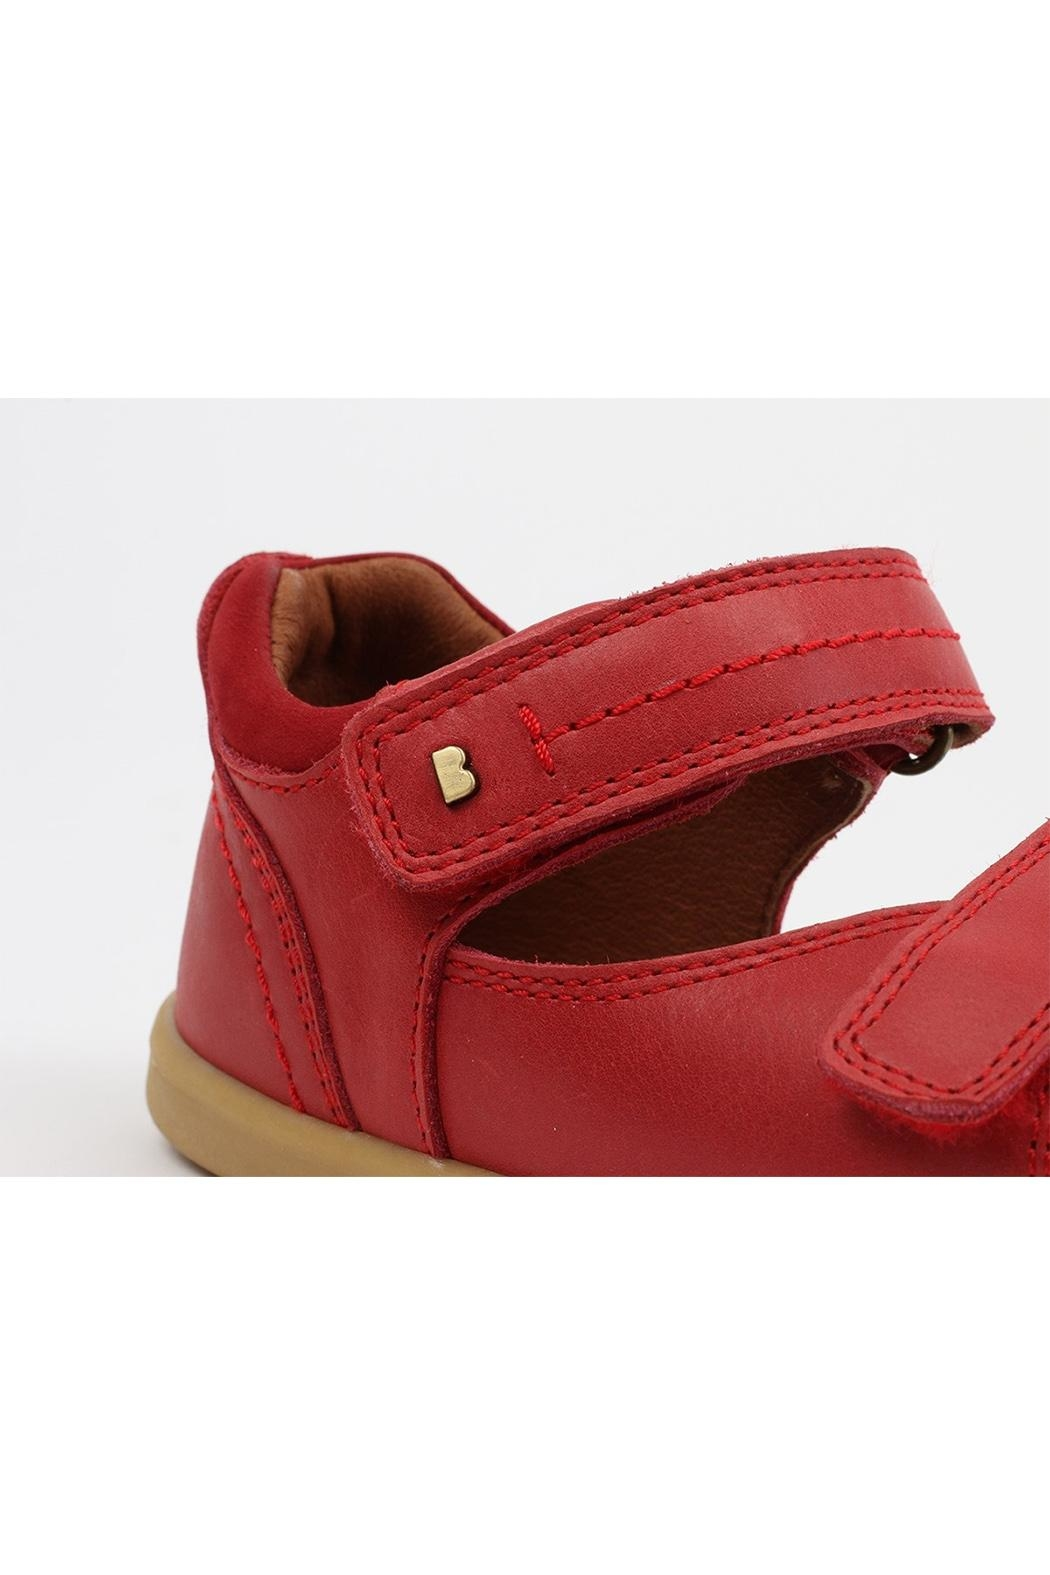 Bobux Unisex Driftwood Red-Sandals - Front Full Image